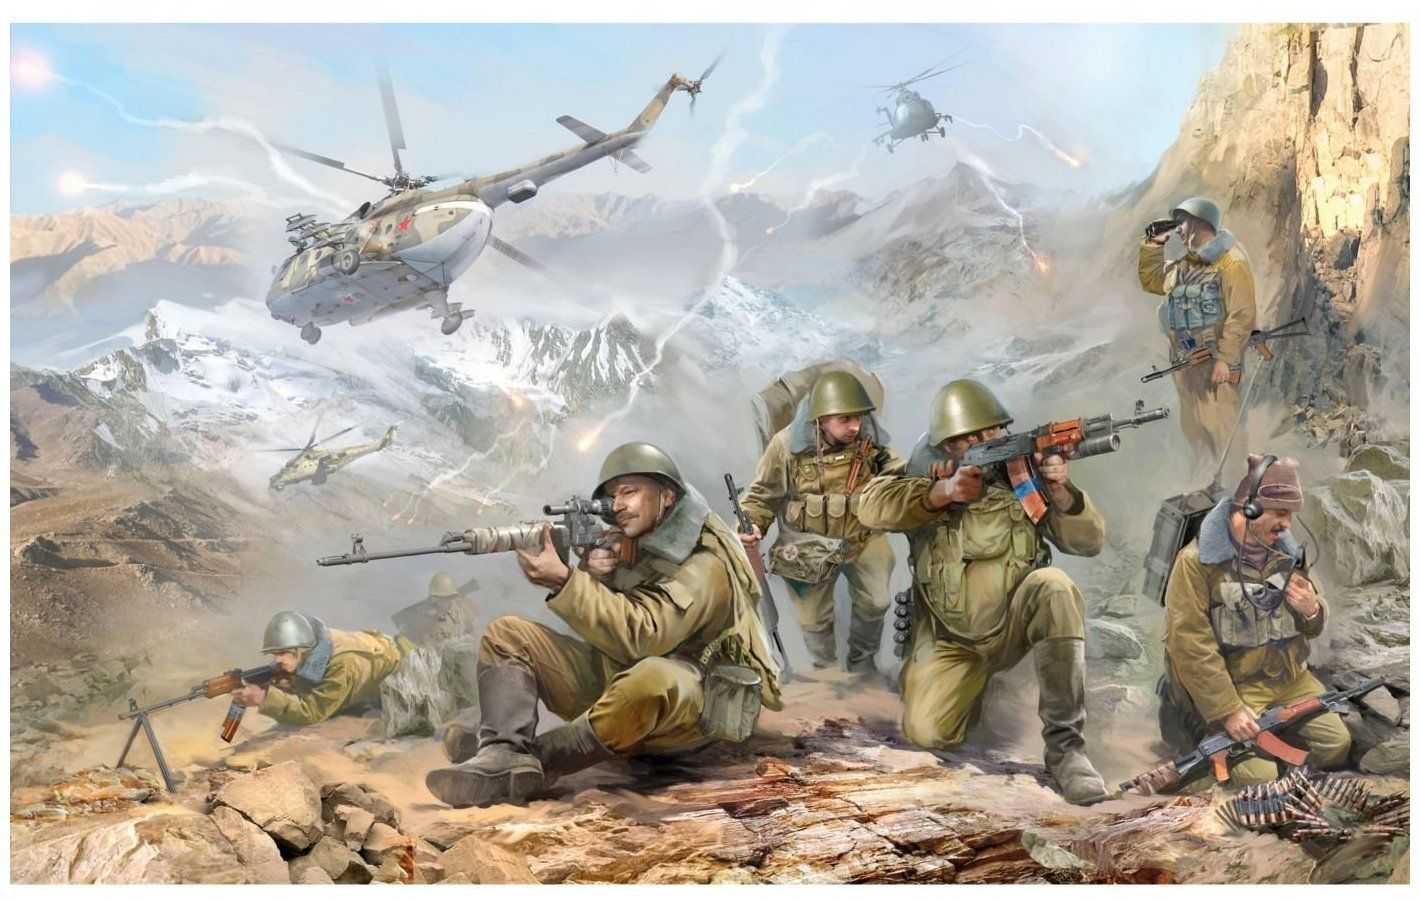 Battle of Arghandab - Soviet war in Afghanistan | Modern Time Wars ...